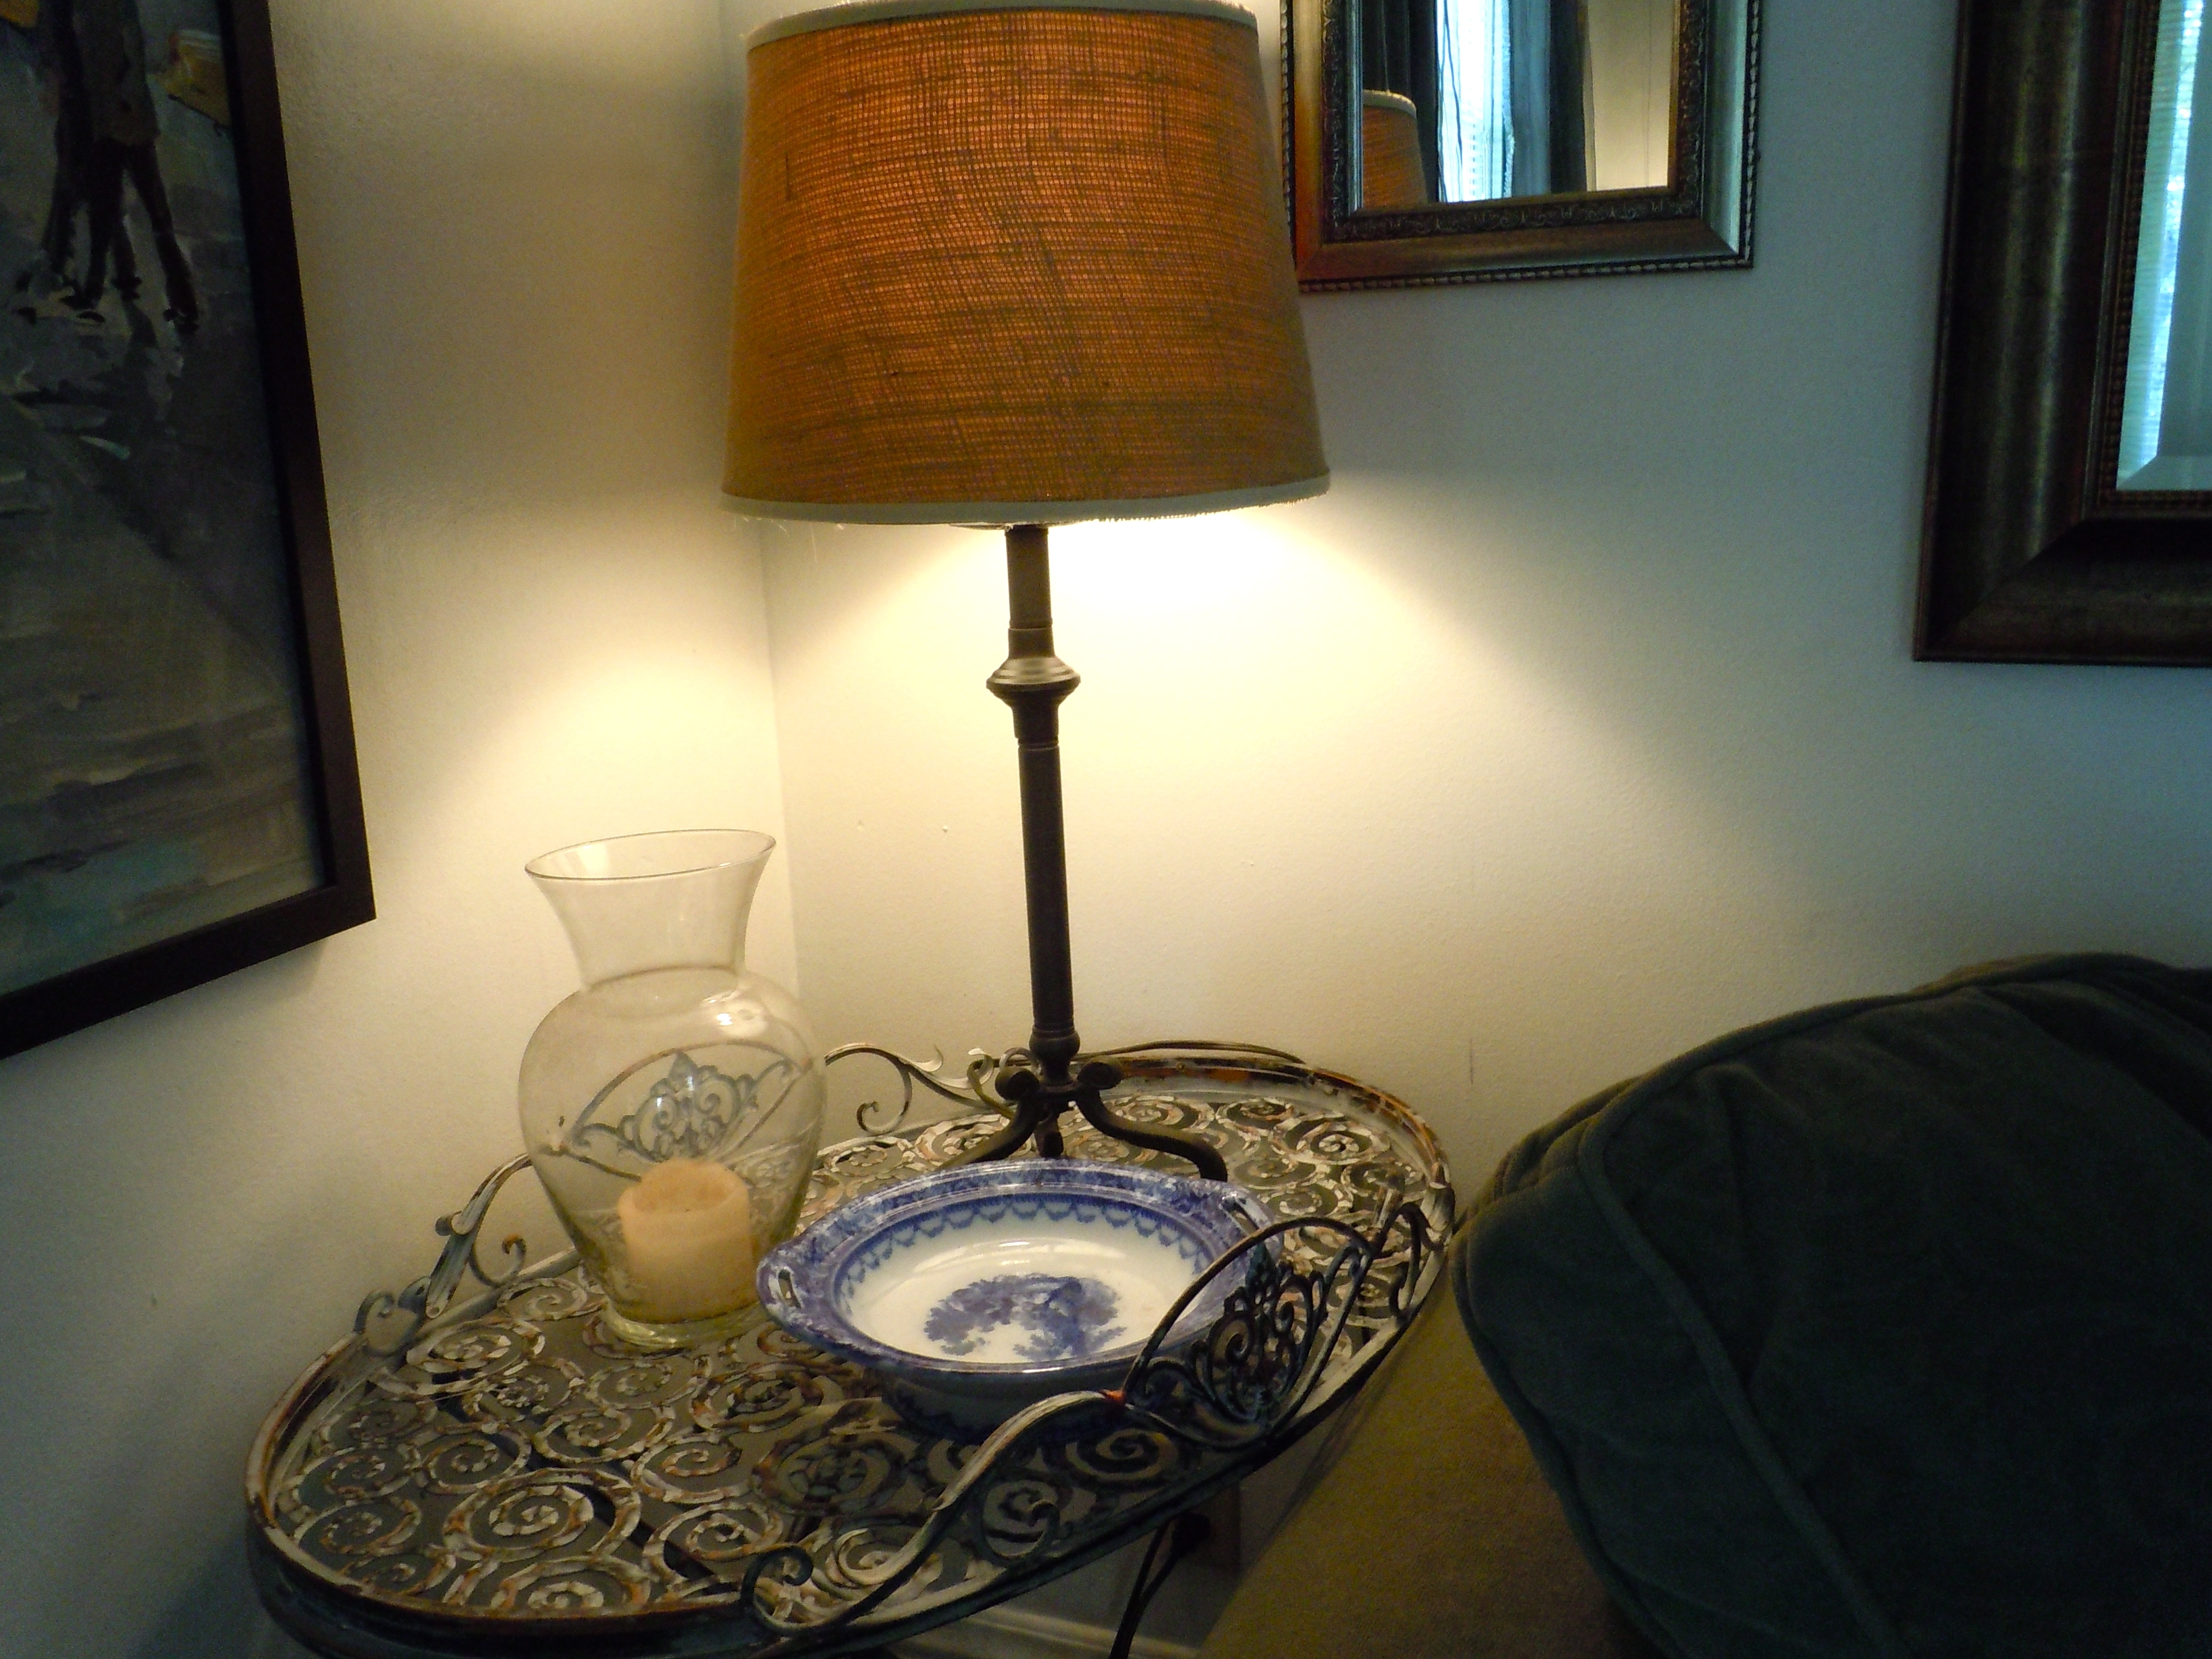 Wrought Iron Living Room Table Lamps Inside Most Current Decor & Tips: Chic Wrought Iron Bed Side Table With Burlap Lamp (View 10 of 15)